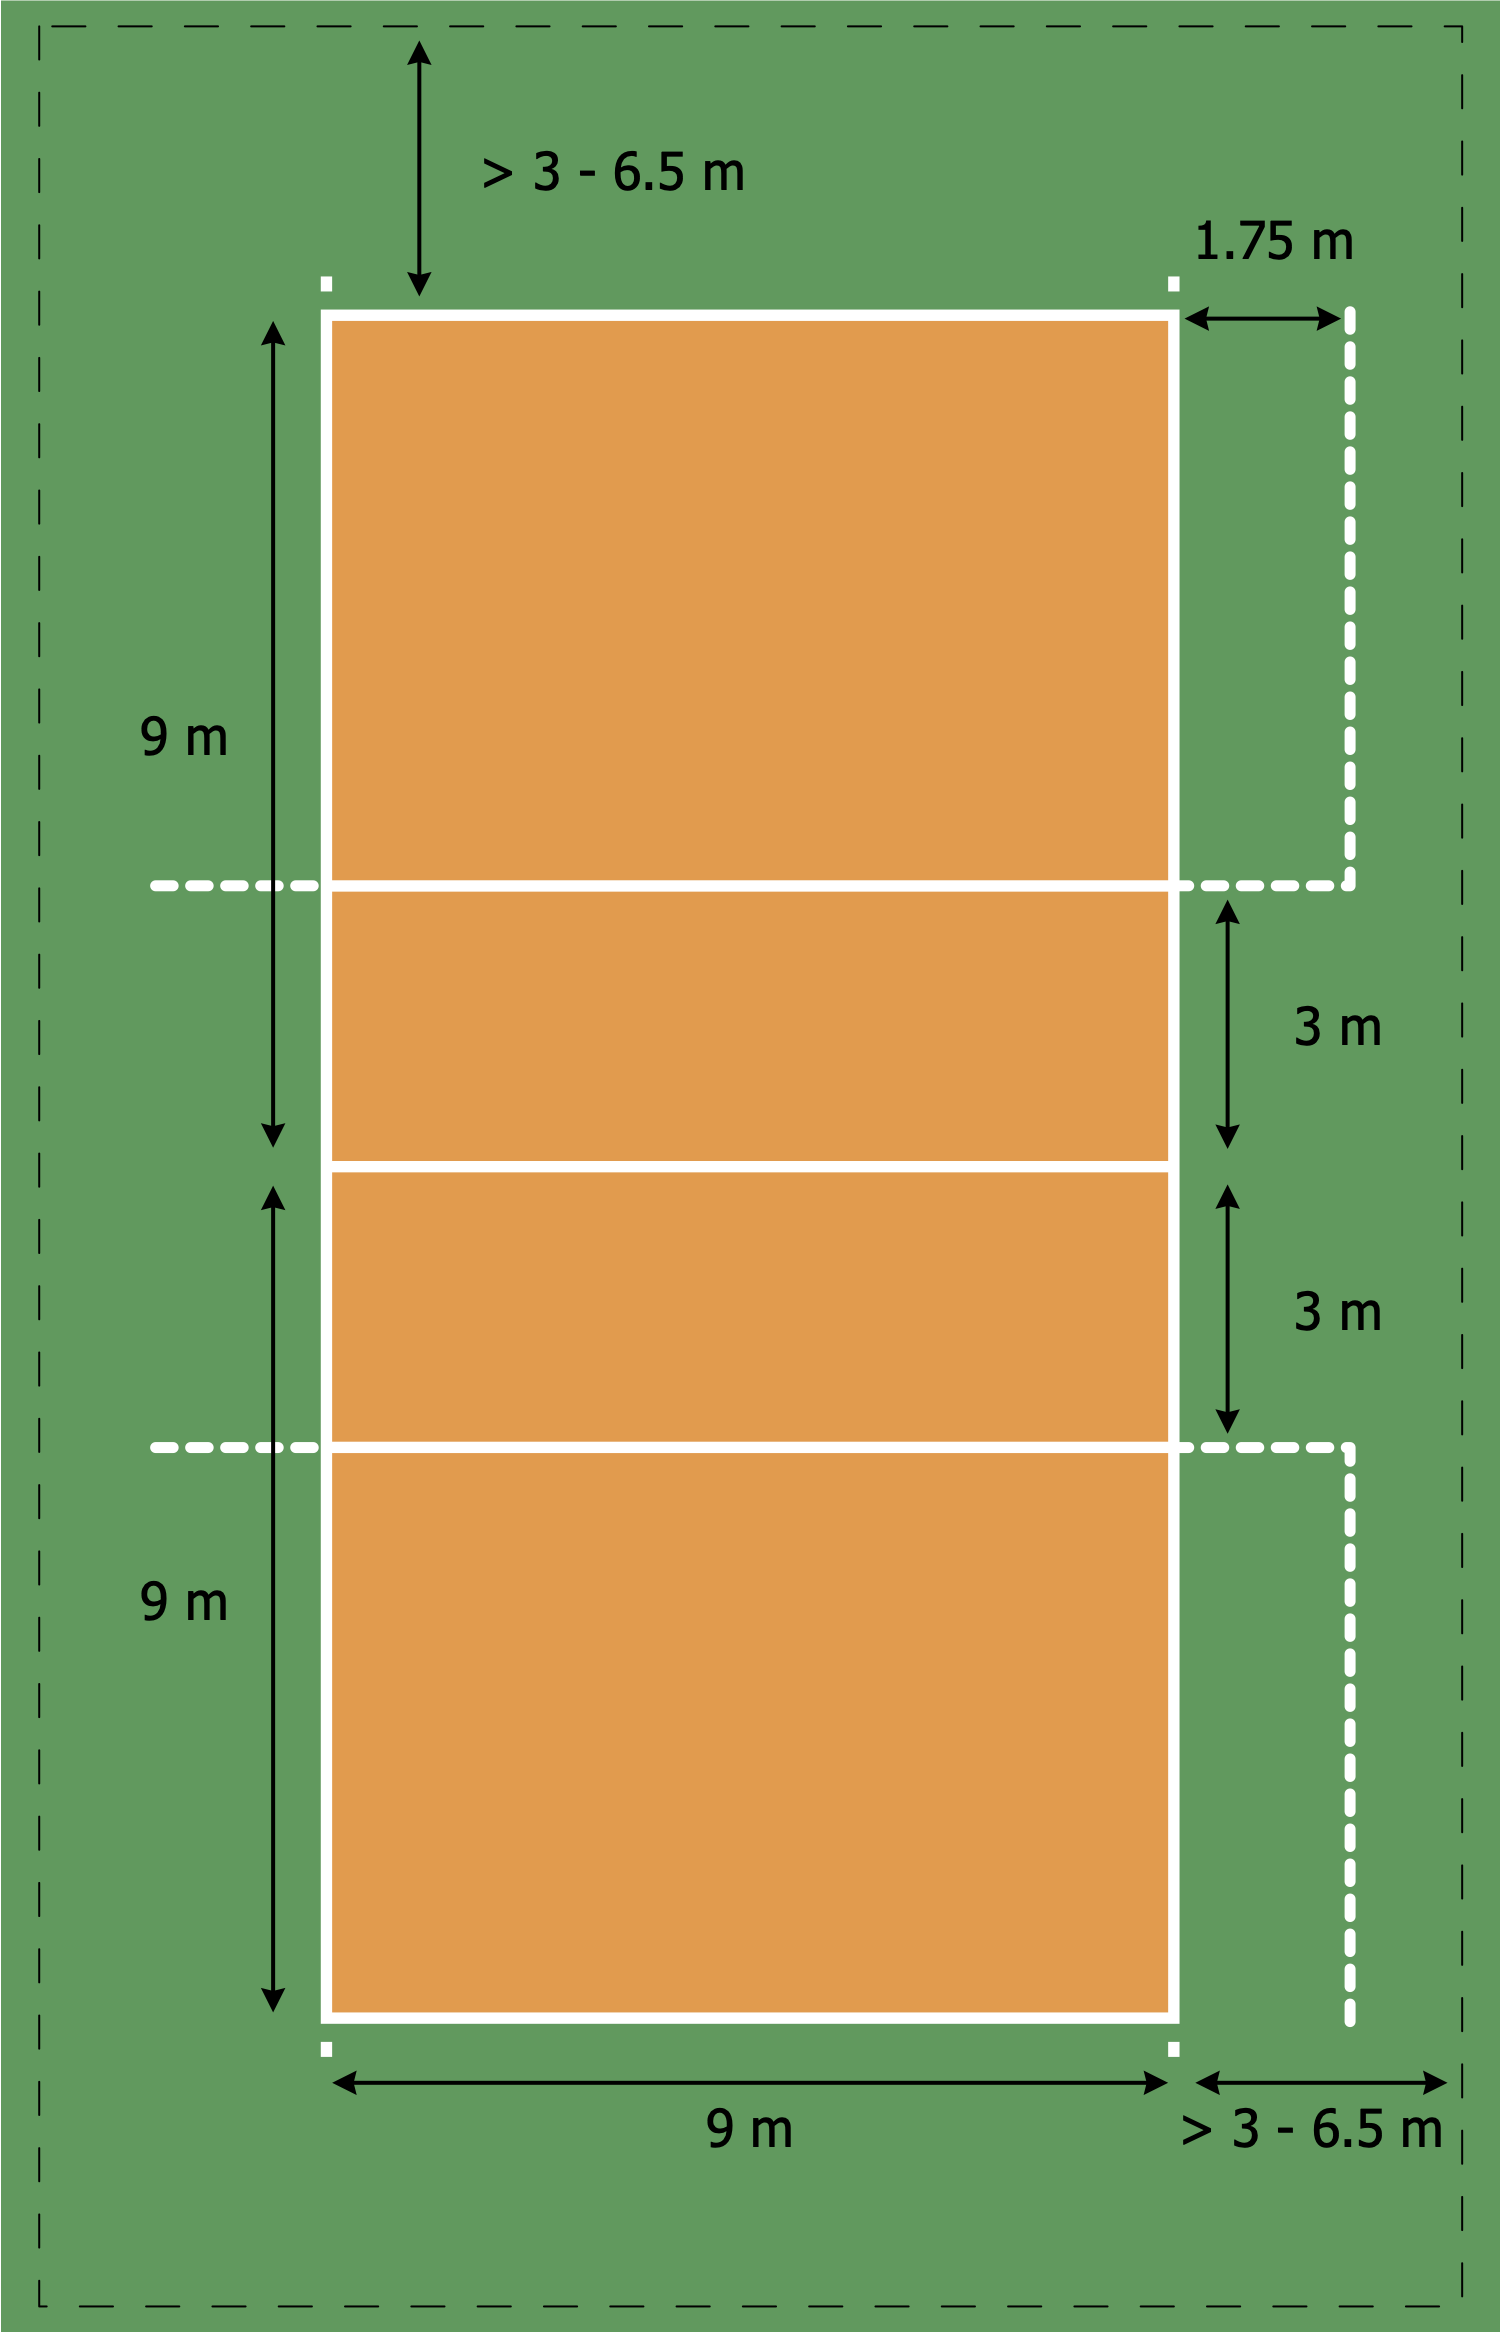 Volleyball Court Template In 2020 Volleyball Court Size Volleyball Court Backyard Beach Volleyball Court Dimensions